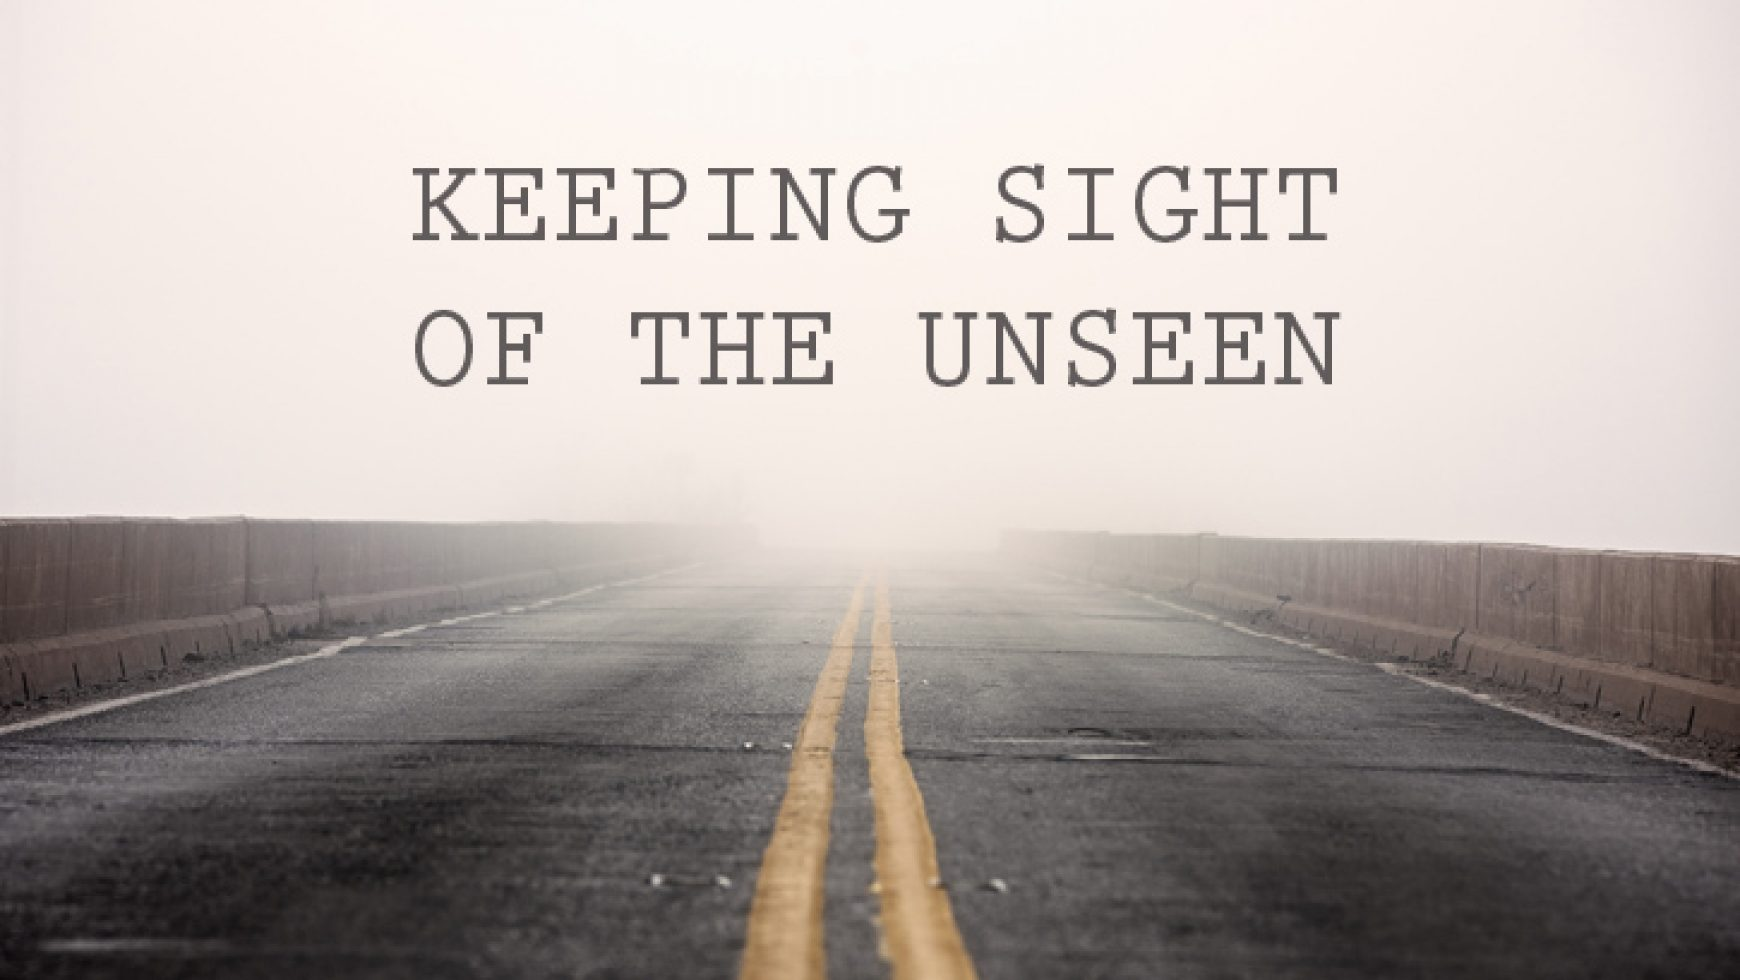 Keeping Sight of the Unseen